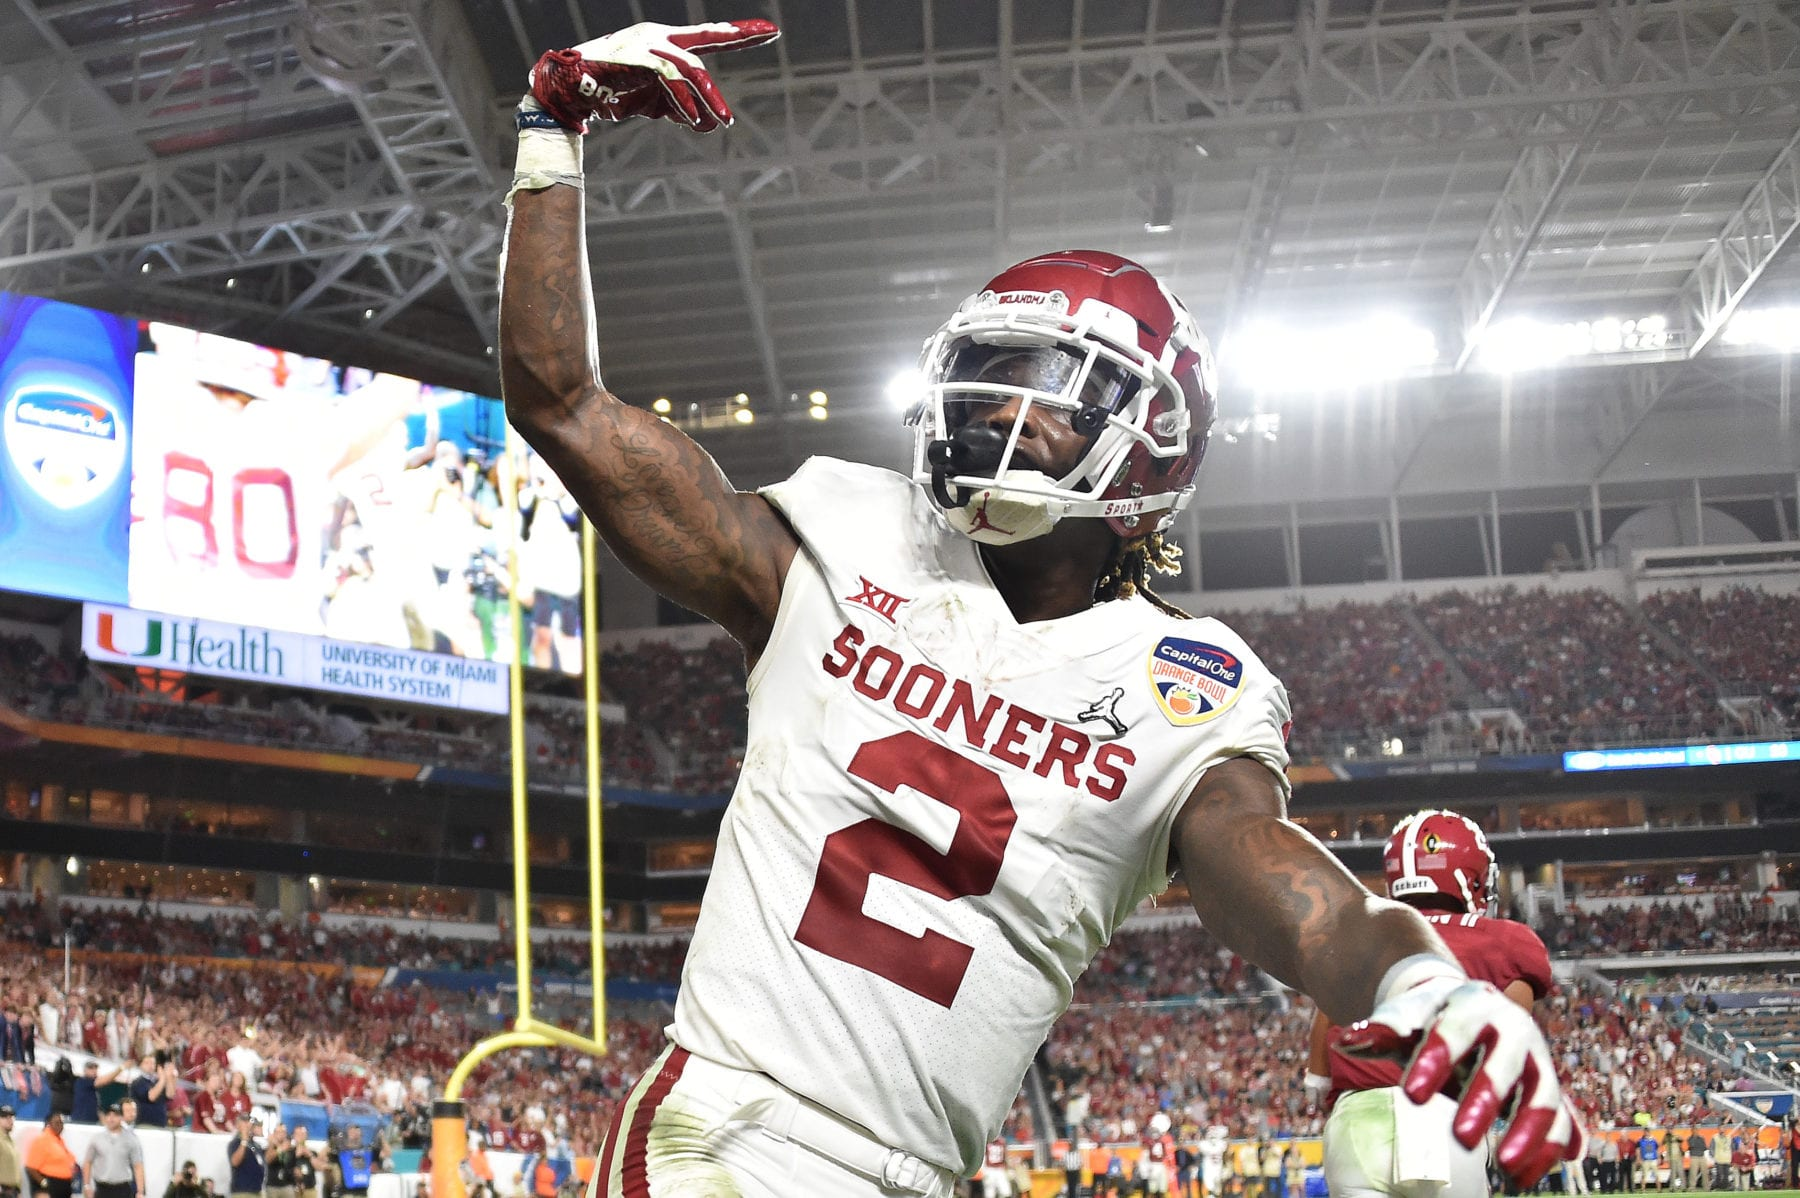 Best Wide Receivers 2020.The 2020 Wr Class Could Truly Be Historic The Draft Network